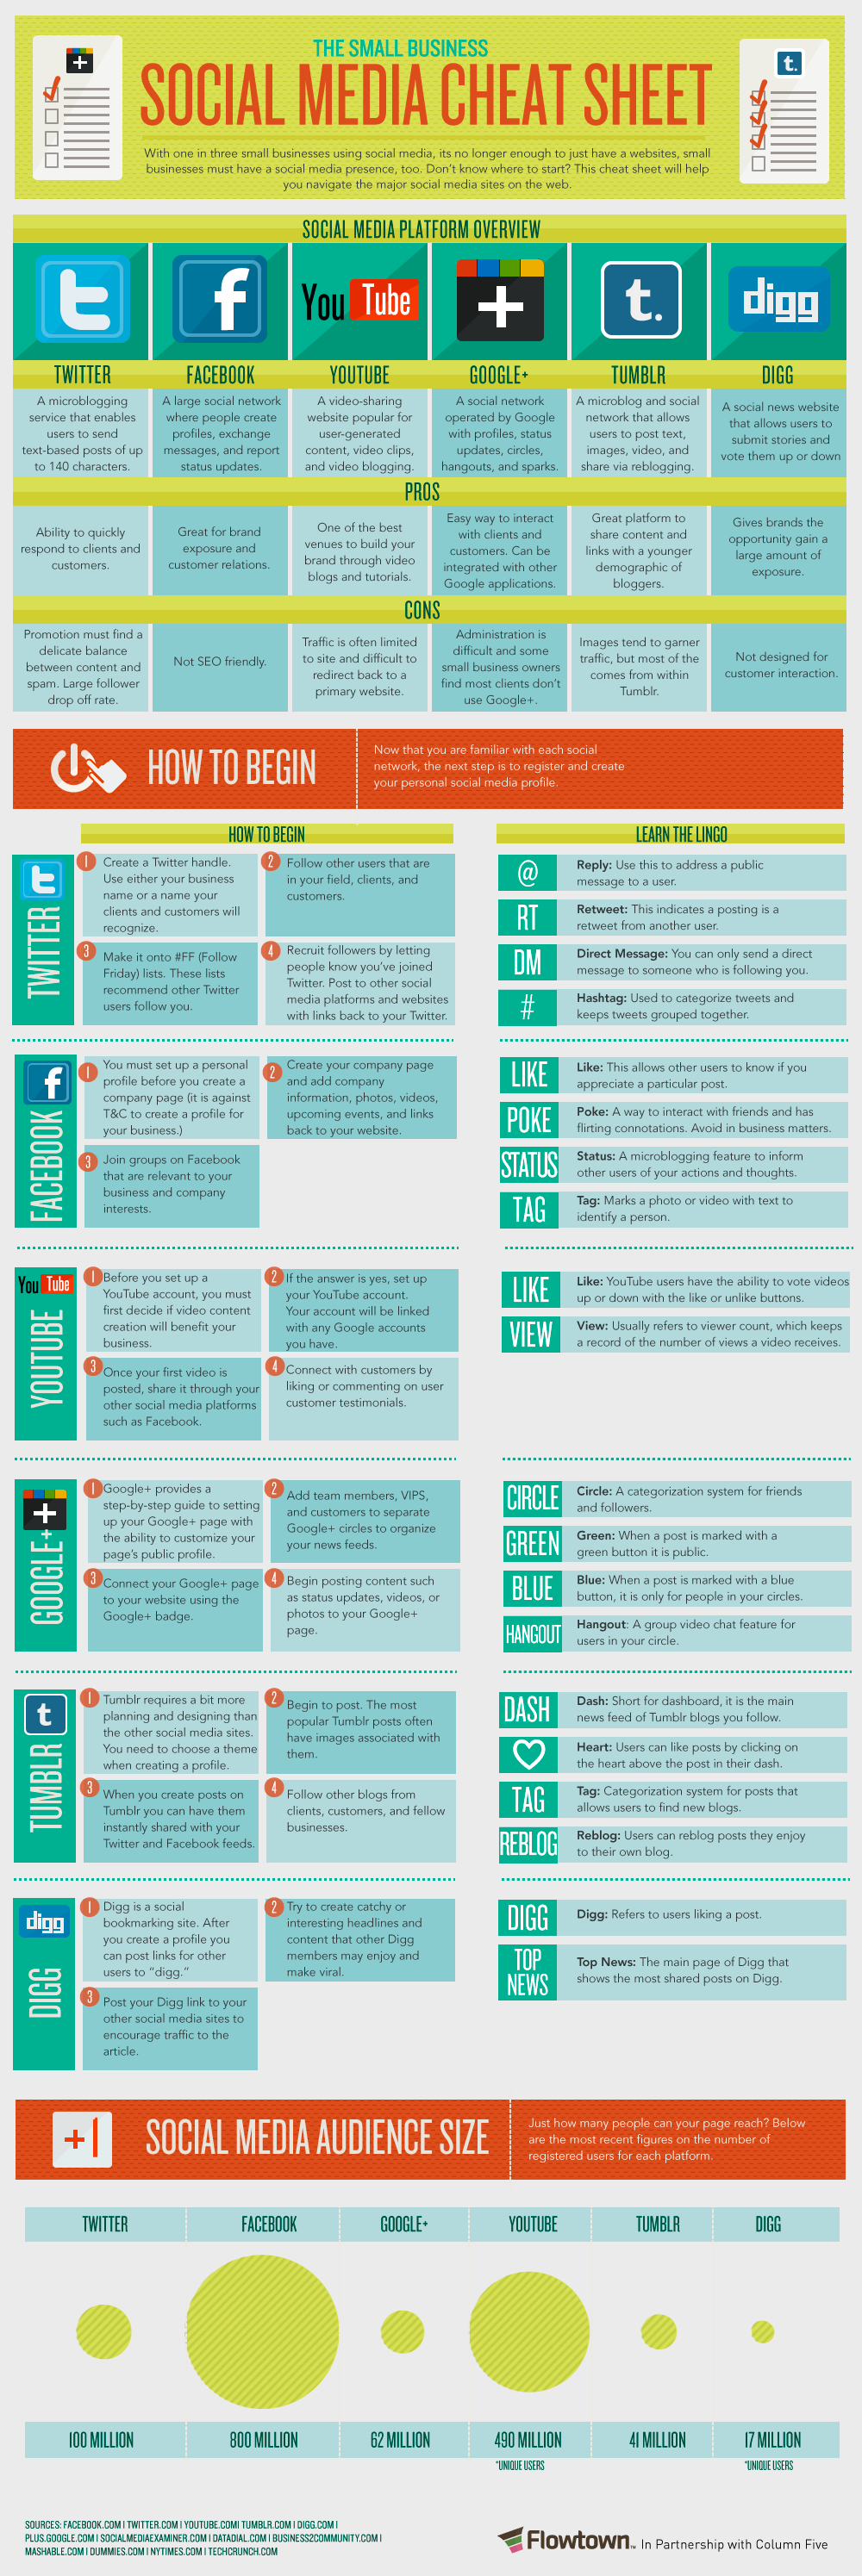 Great infographic about several social media platforms ...